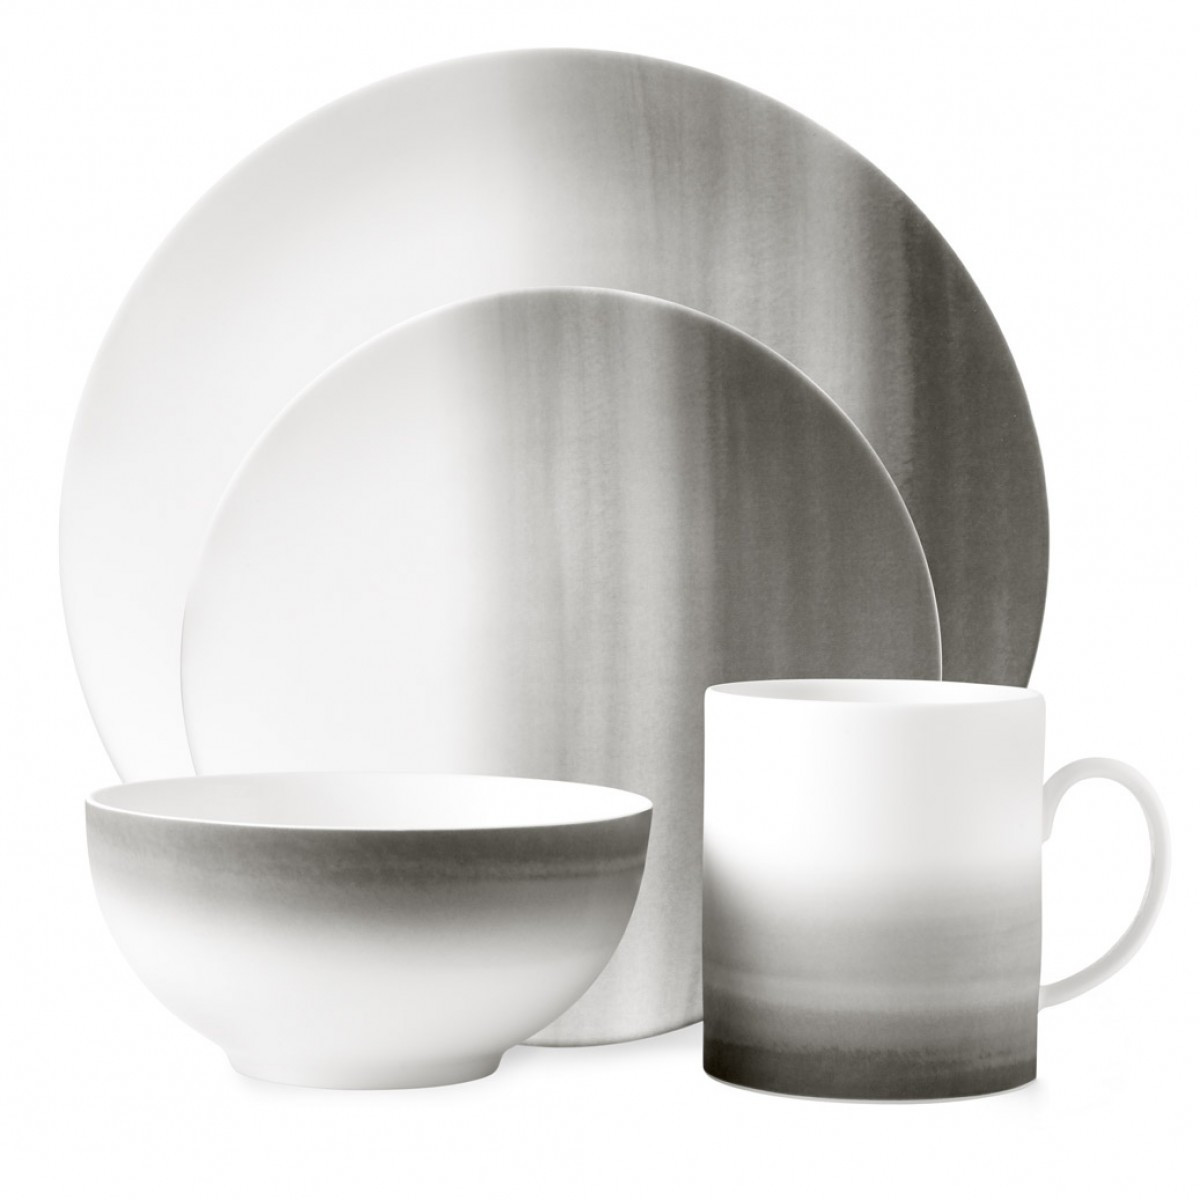 vera wang love knots vase of vera degradae 4 piece place setting vera wang wedgwood us regarding vera degradae 4 piece place setting